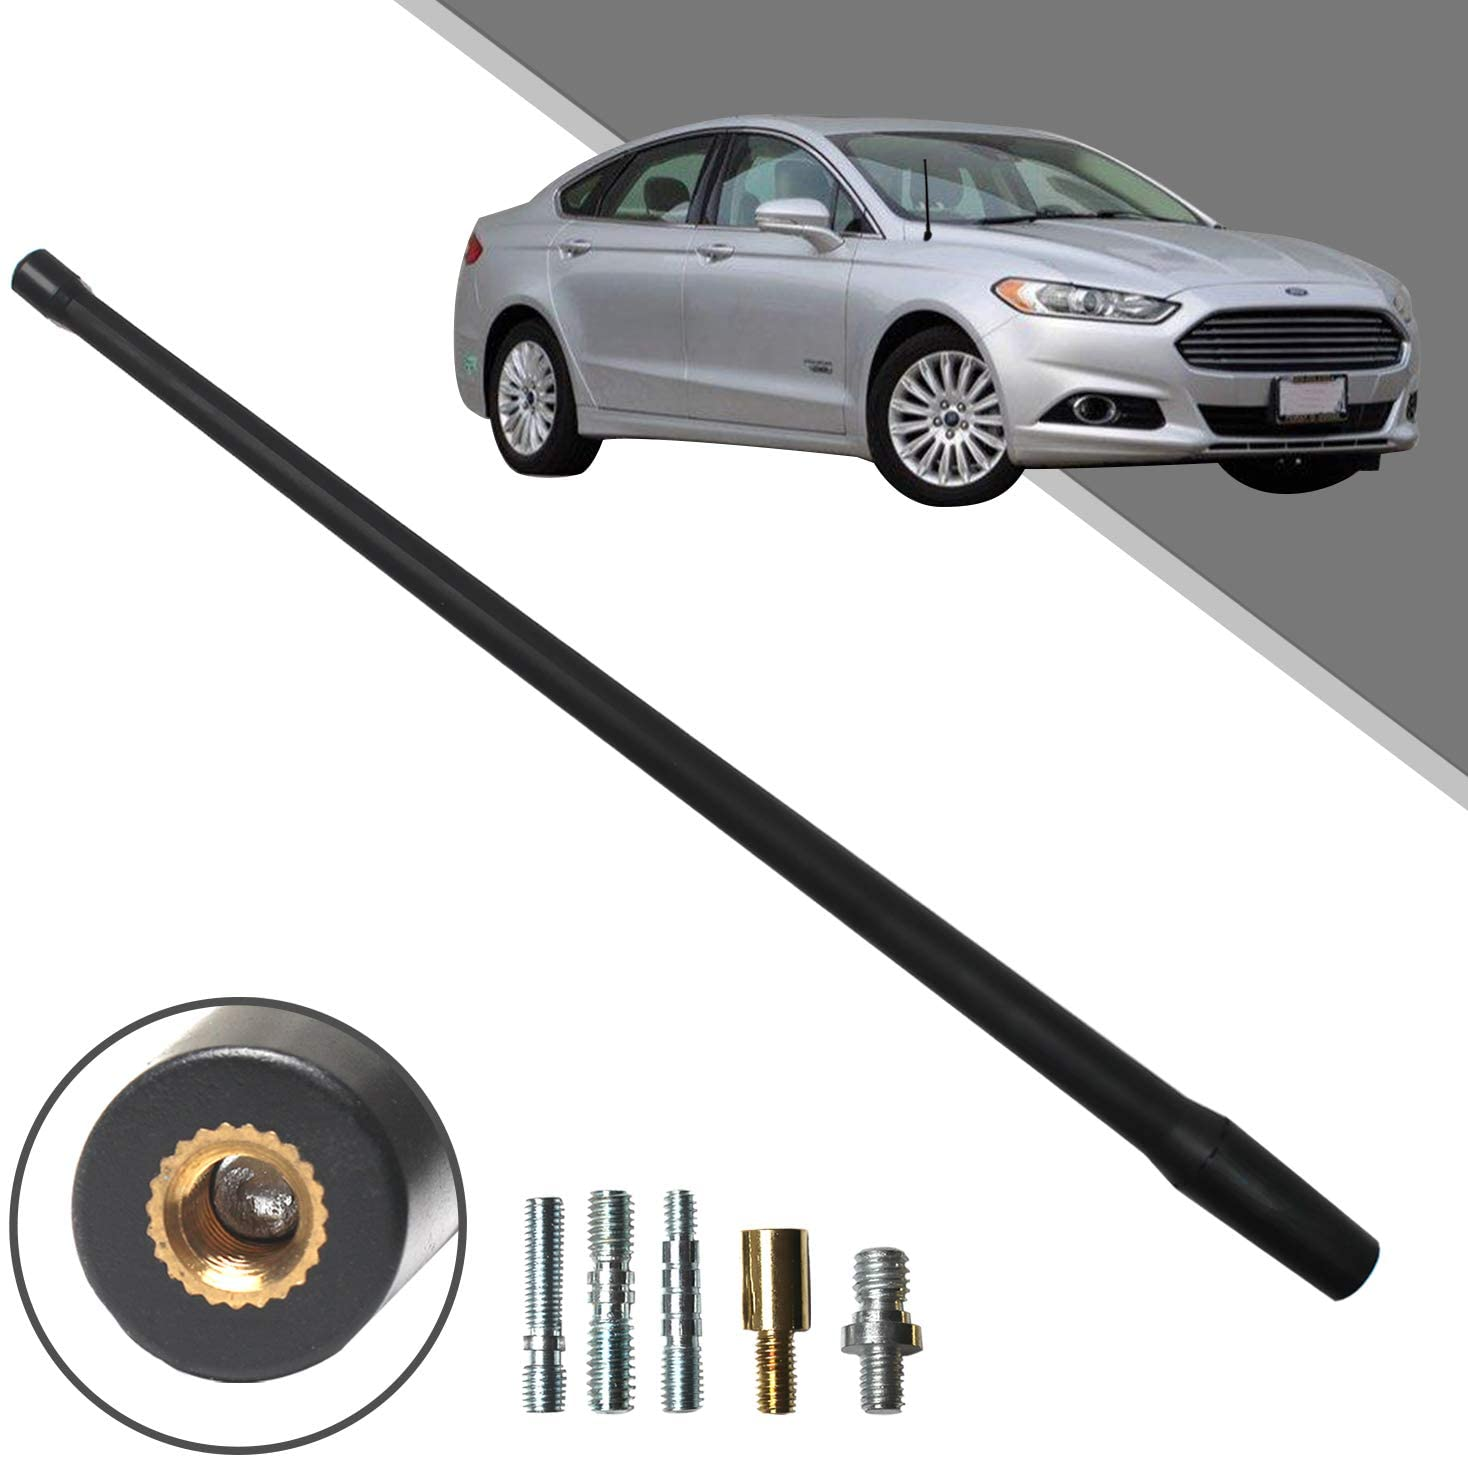 Beneges 13 Inch Flexible Rubber Replacement Antenna Compatible with 2005-2019 Ford Fusion, Optimized FM/AM Reception.